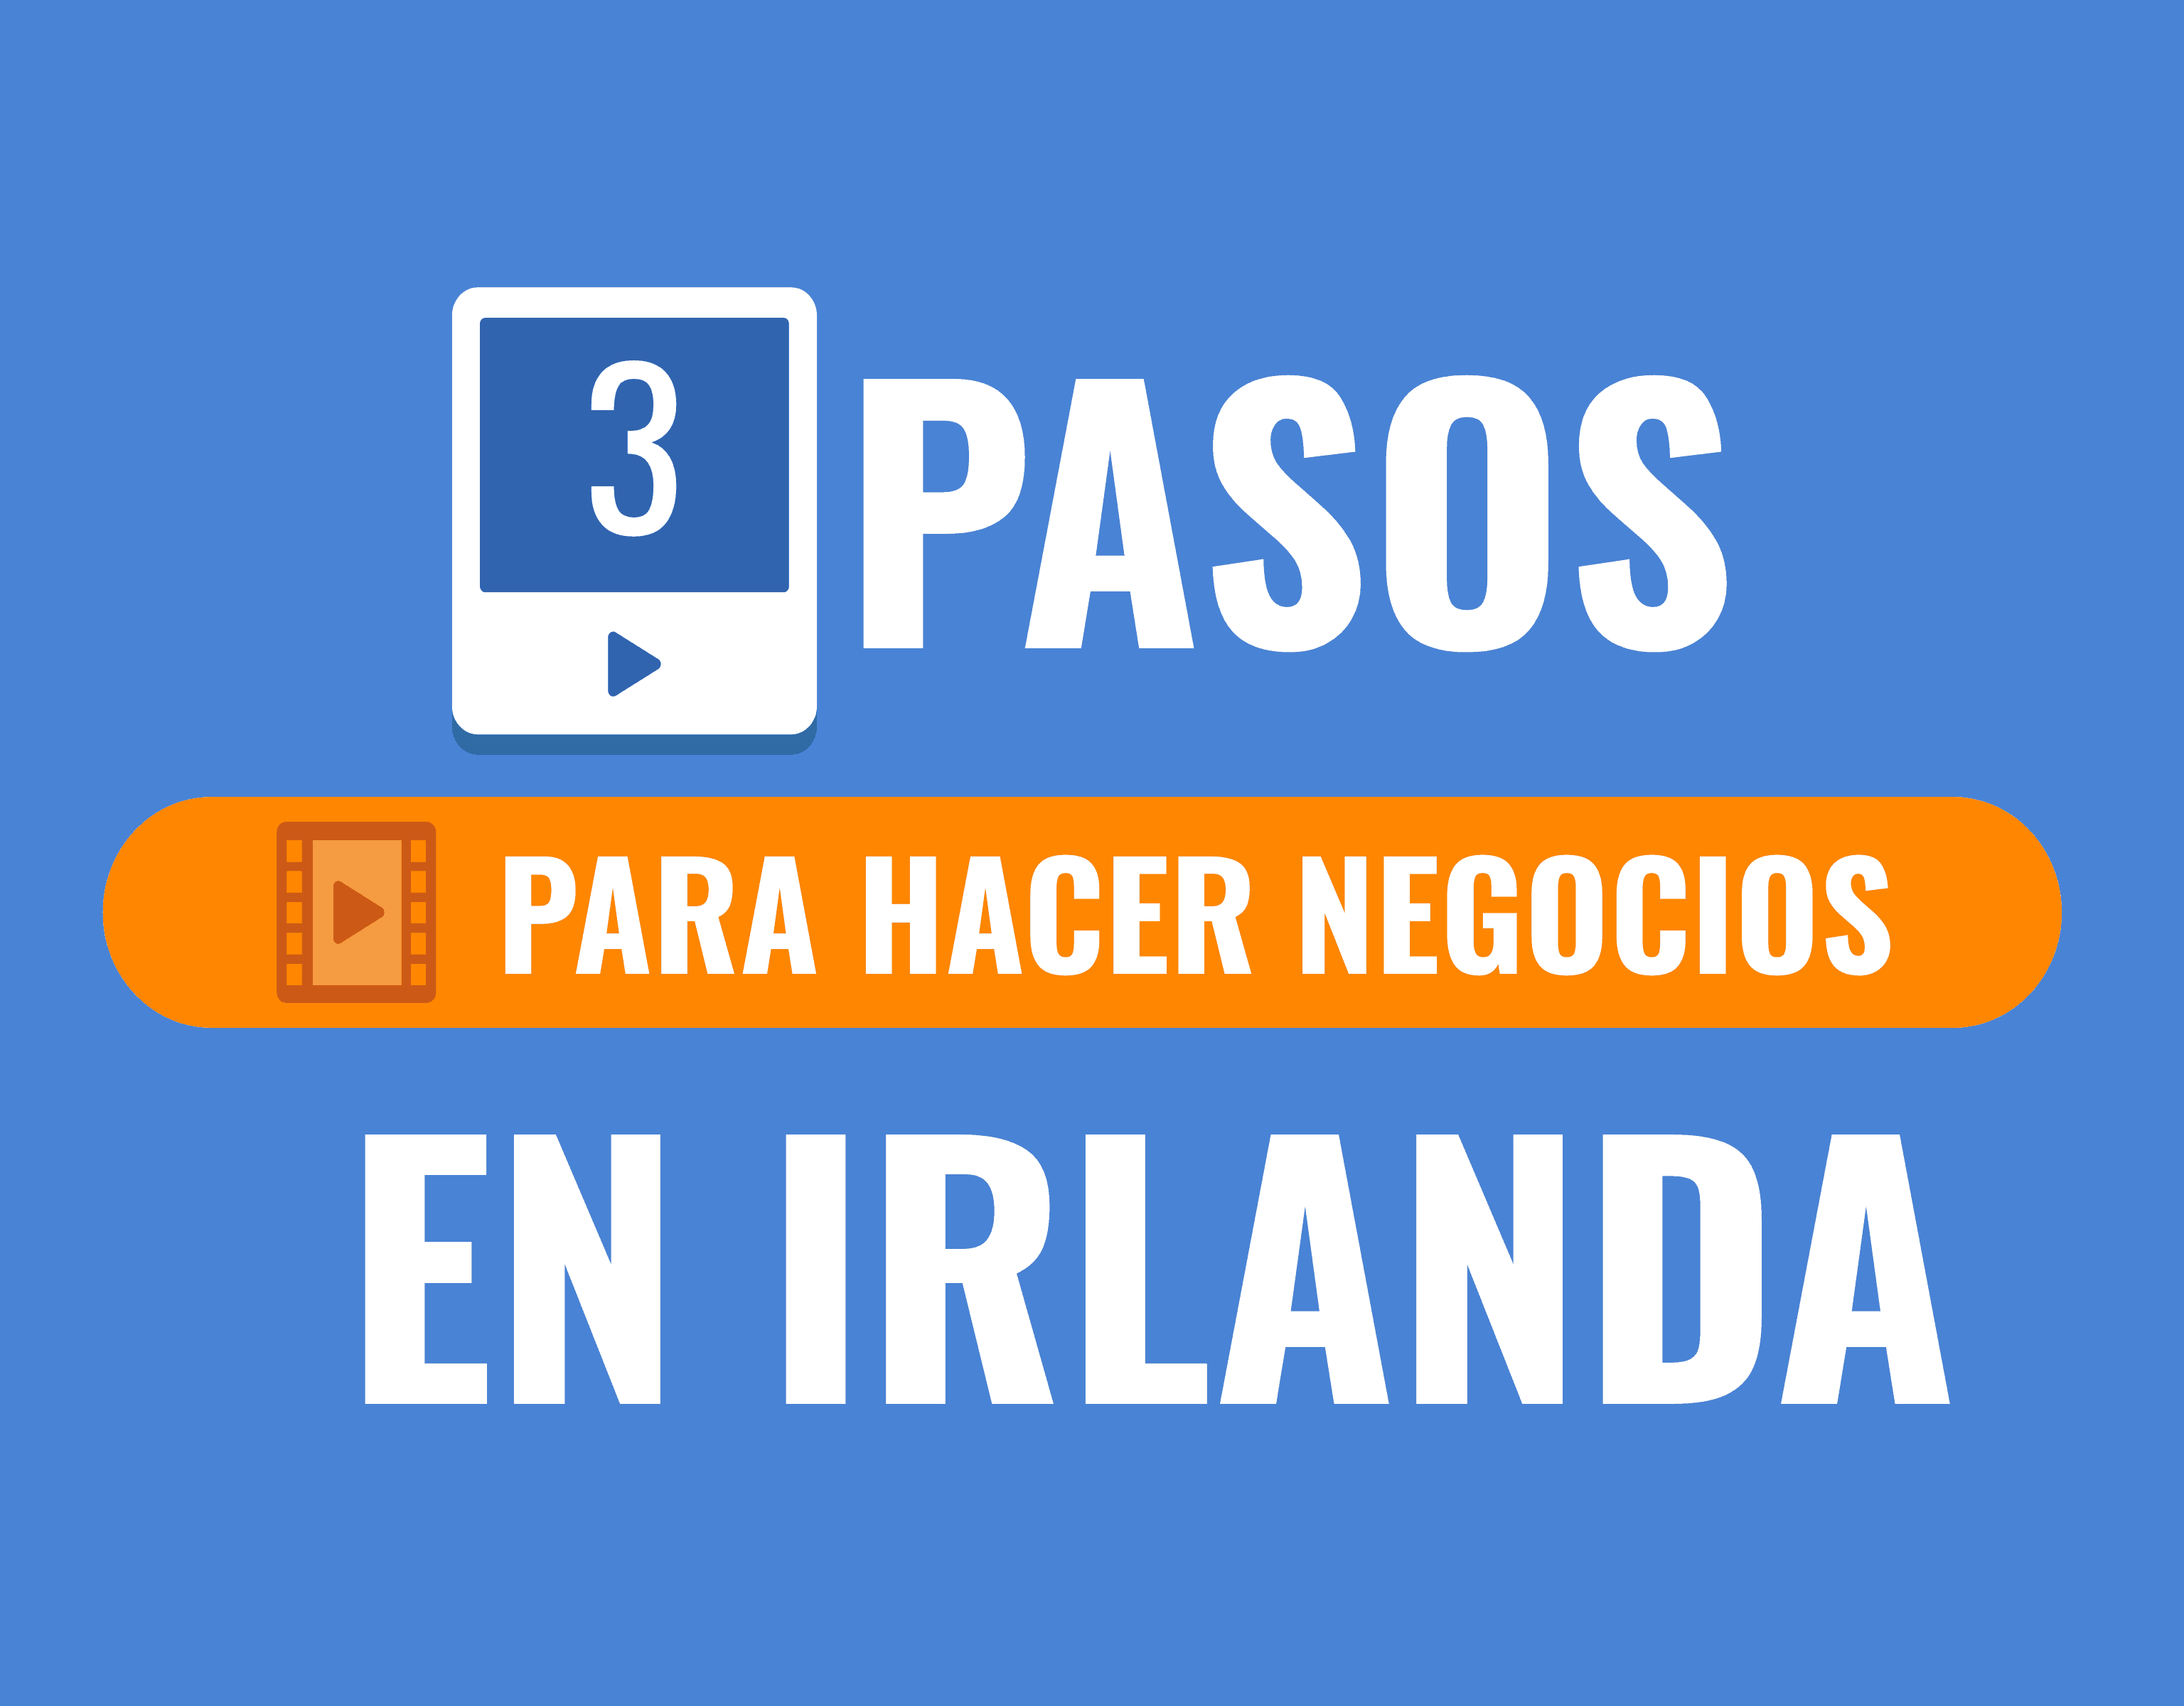 Abrir una Empresa en Irlanda - 3 Pasos para Hacer Negocios en Irlanda - How to make a business in Ireland